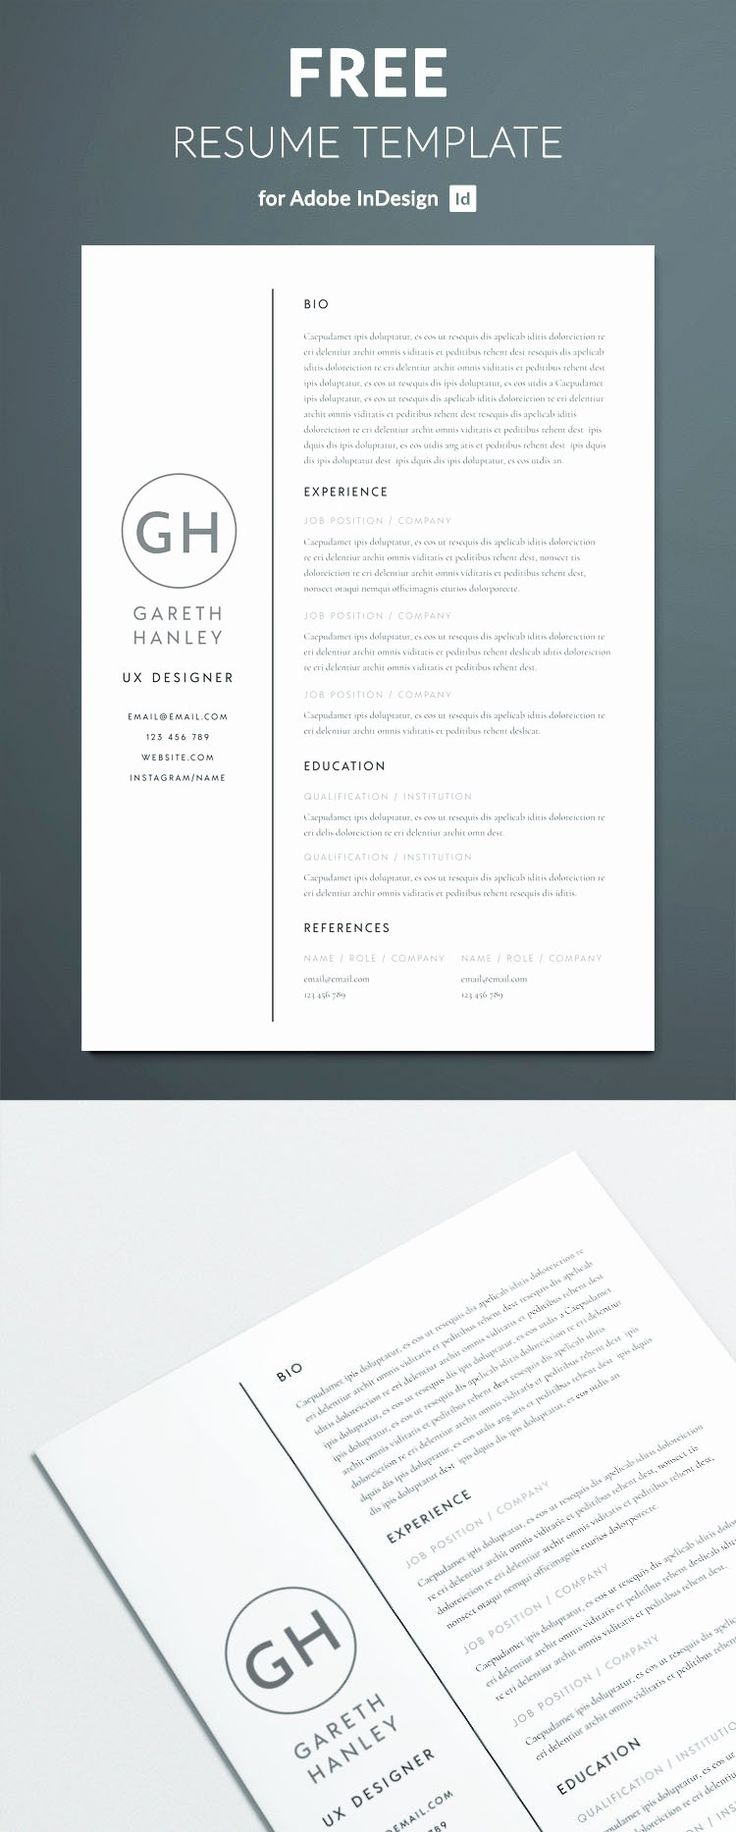 23+ Perfect resume template download ideas in 2021